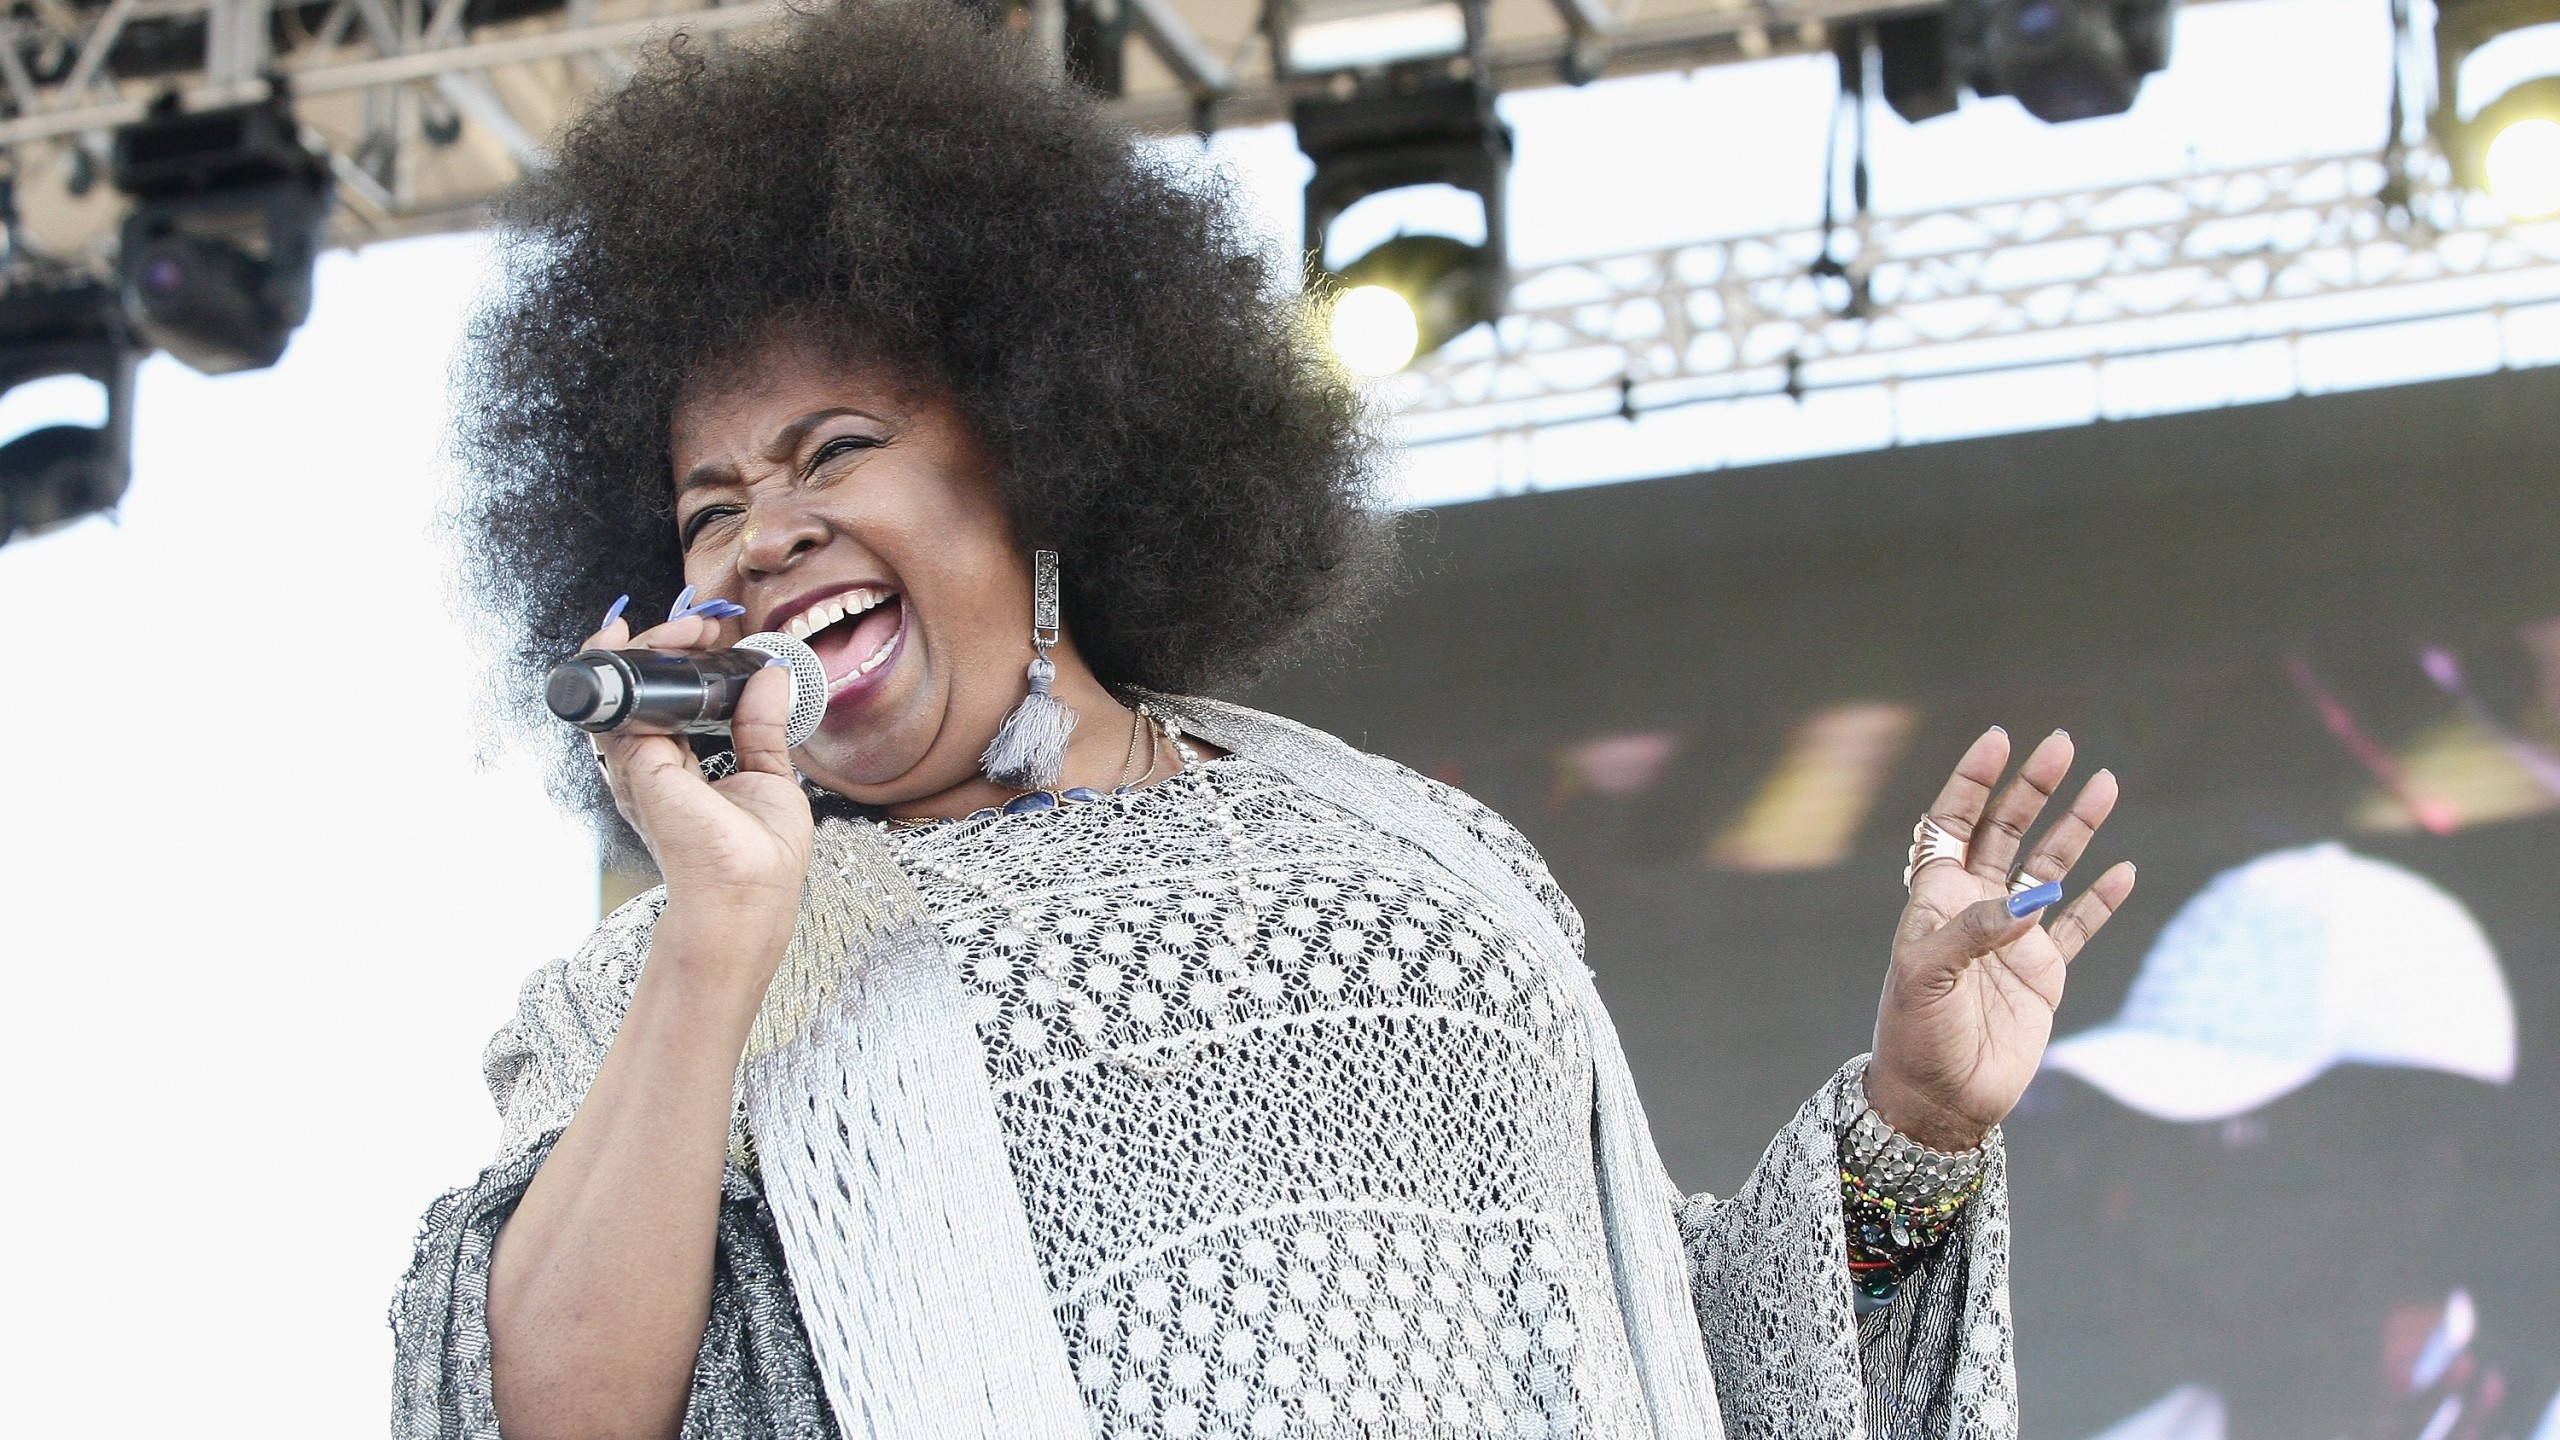 Musician Betty Wright performs on stage at The 12th Annual Jazz In The Gardens Music Festival - Day 1 at Hard Rock Stadium on March 18, 2017 in Miami Gardens, Florida. (Mychal Watts/Getty Images for Jazz in The Gardens Music Festival)